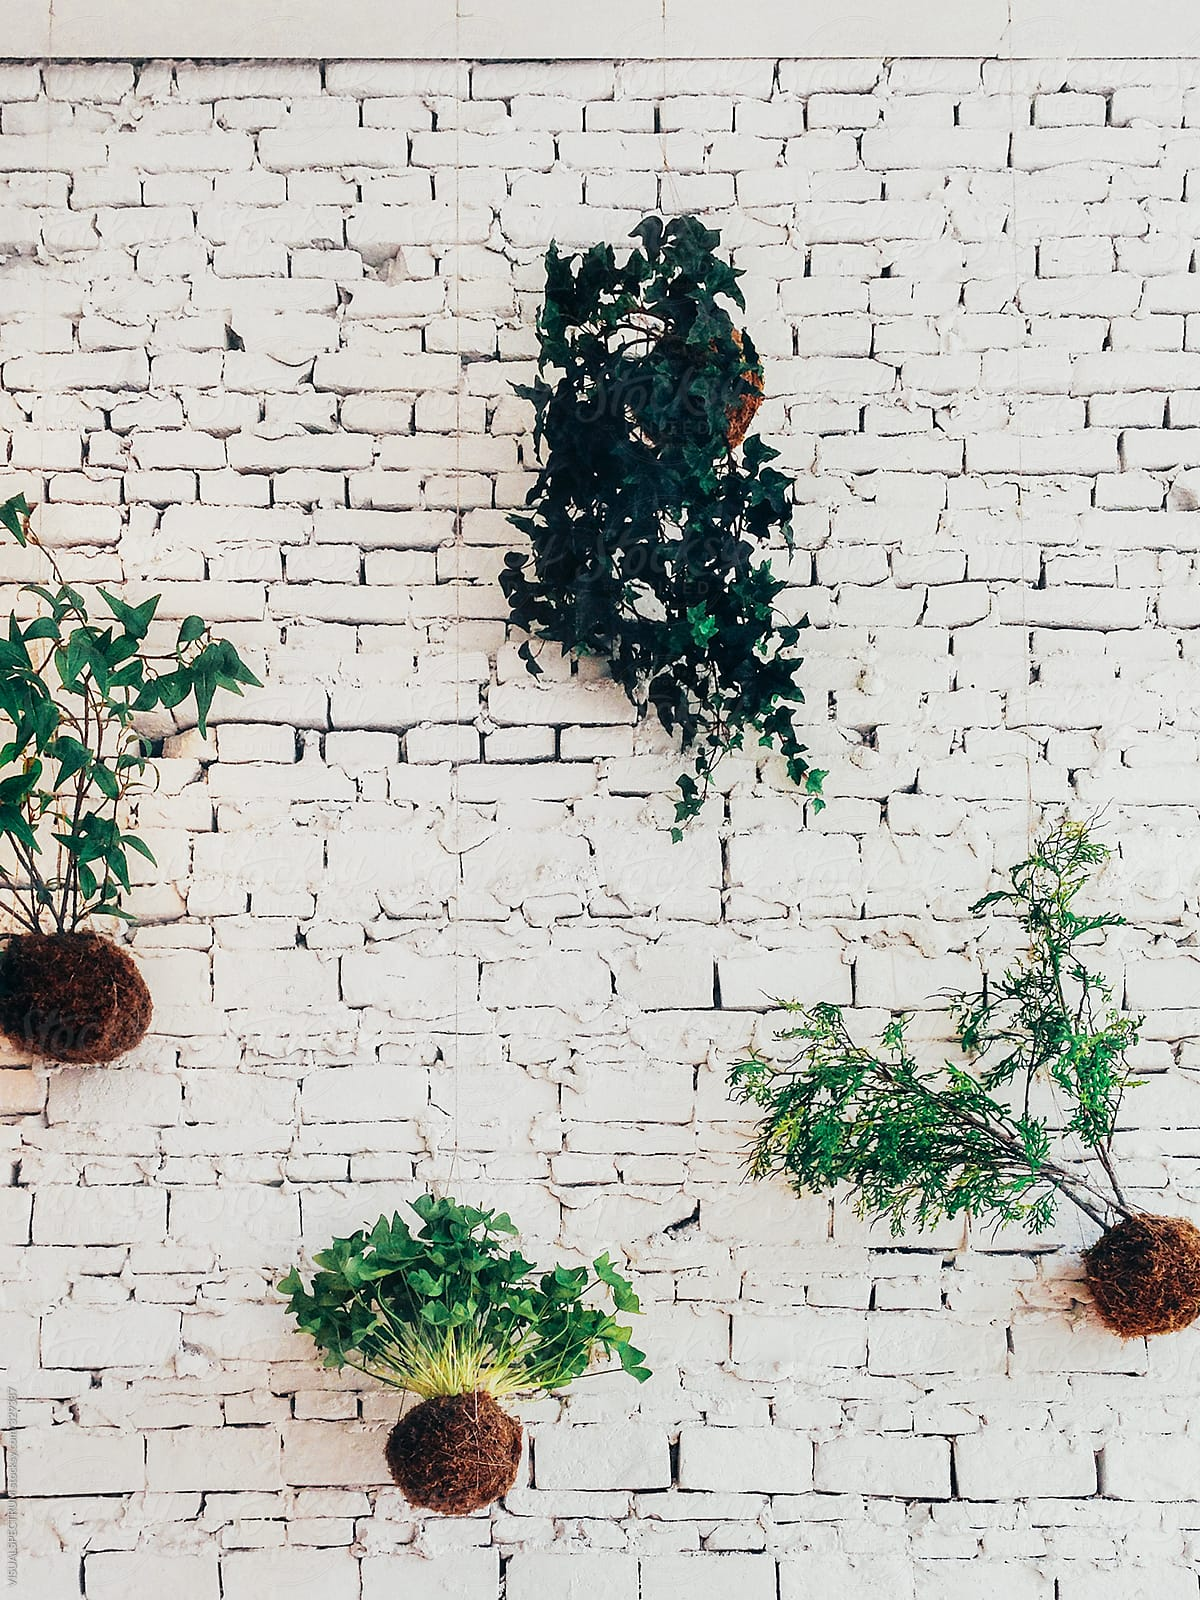 Green Plants Hanging In Front Of White Brick Wall By Visualspectrum Stocksy United